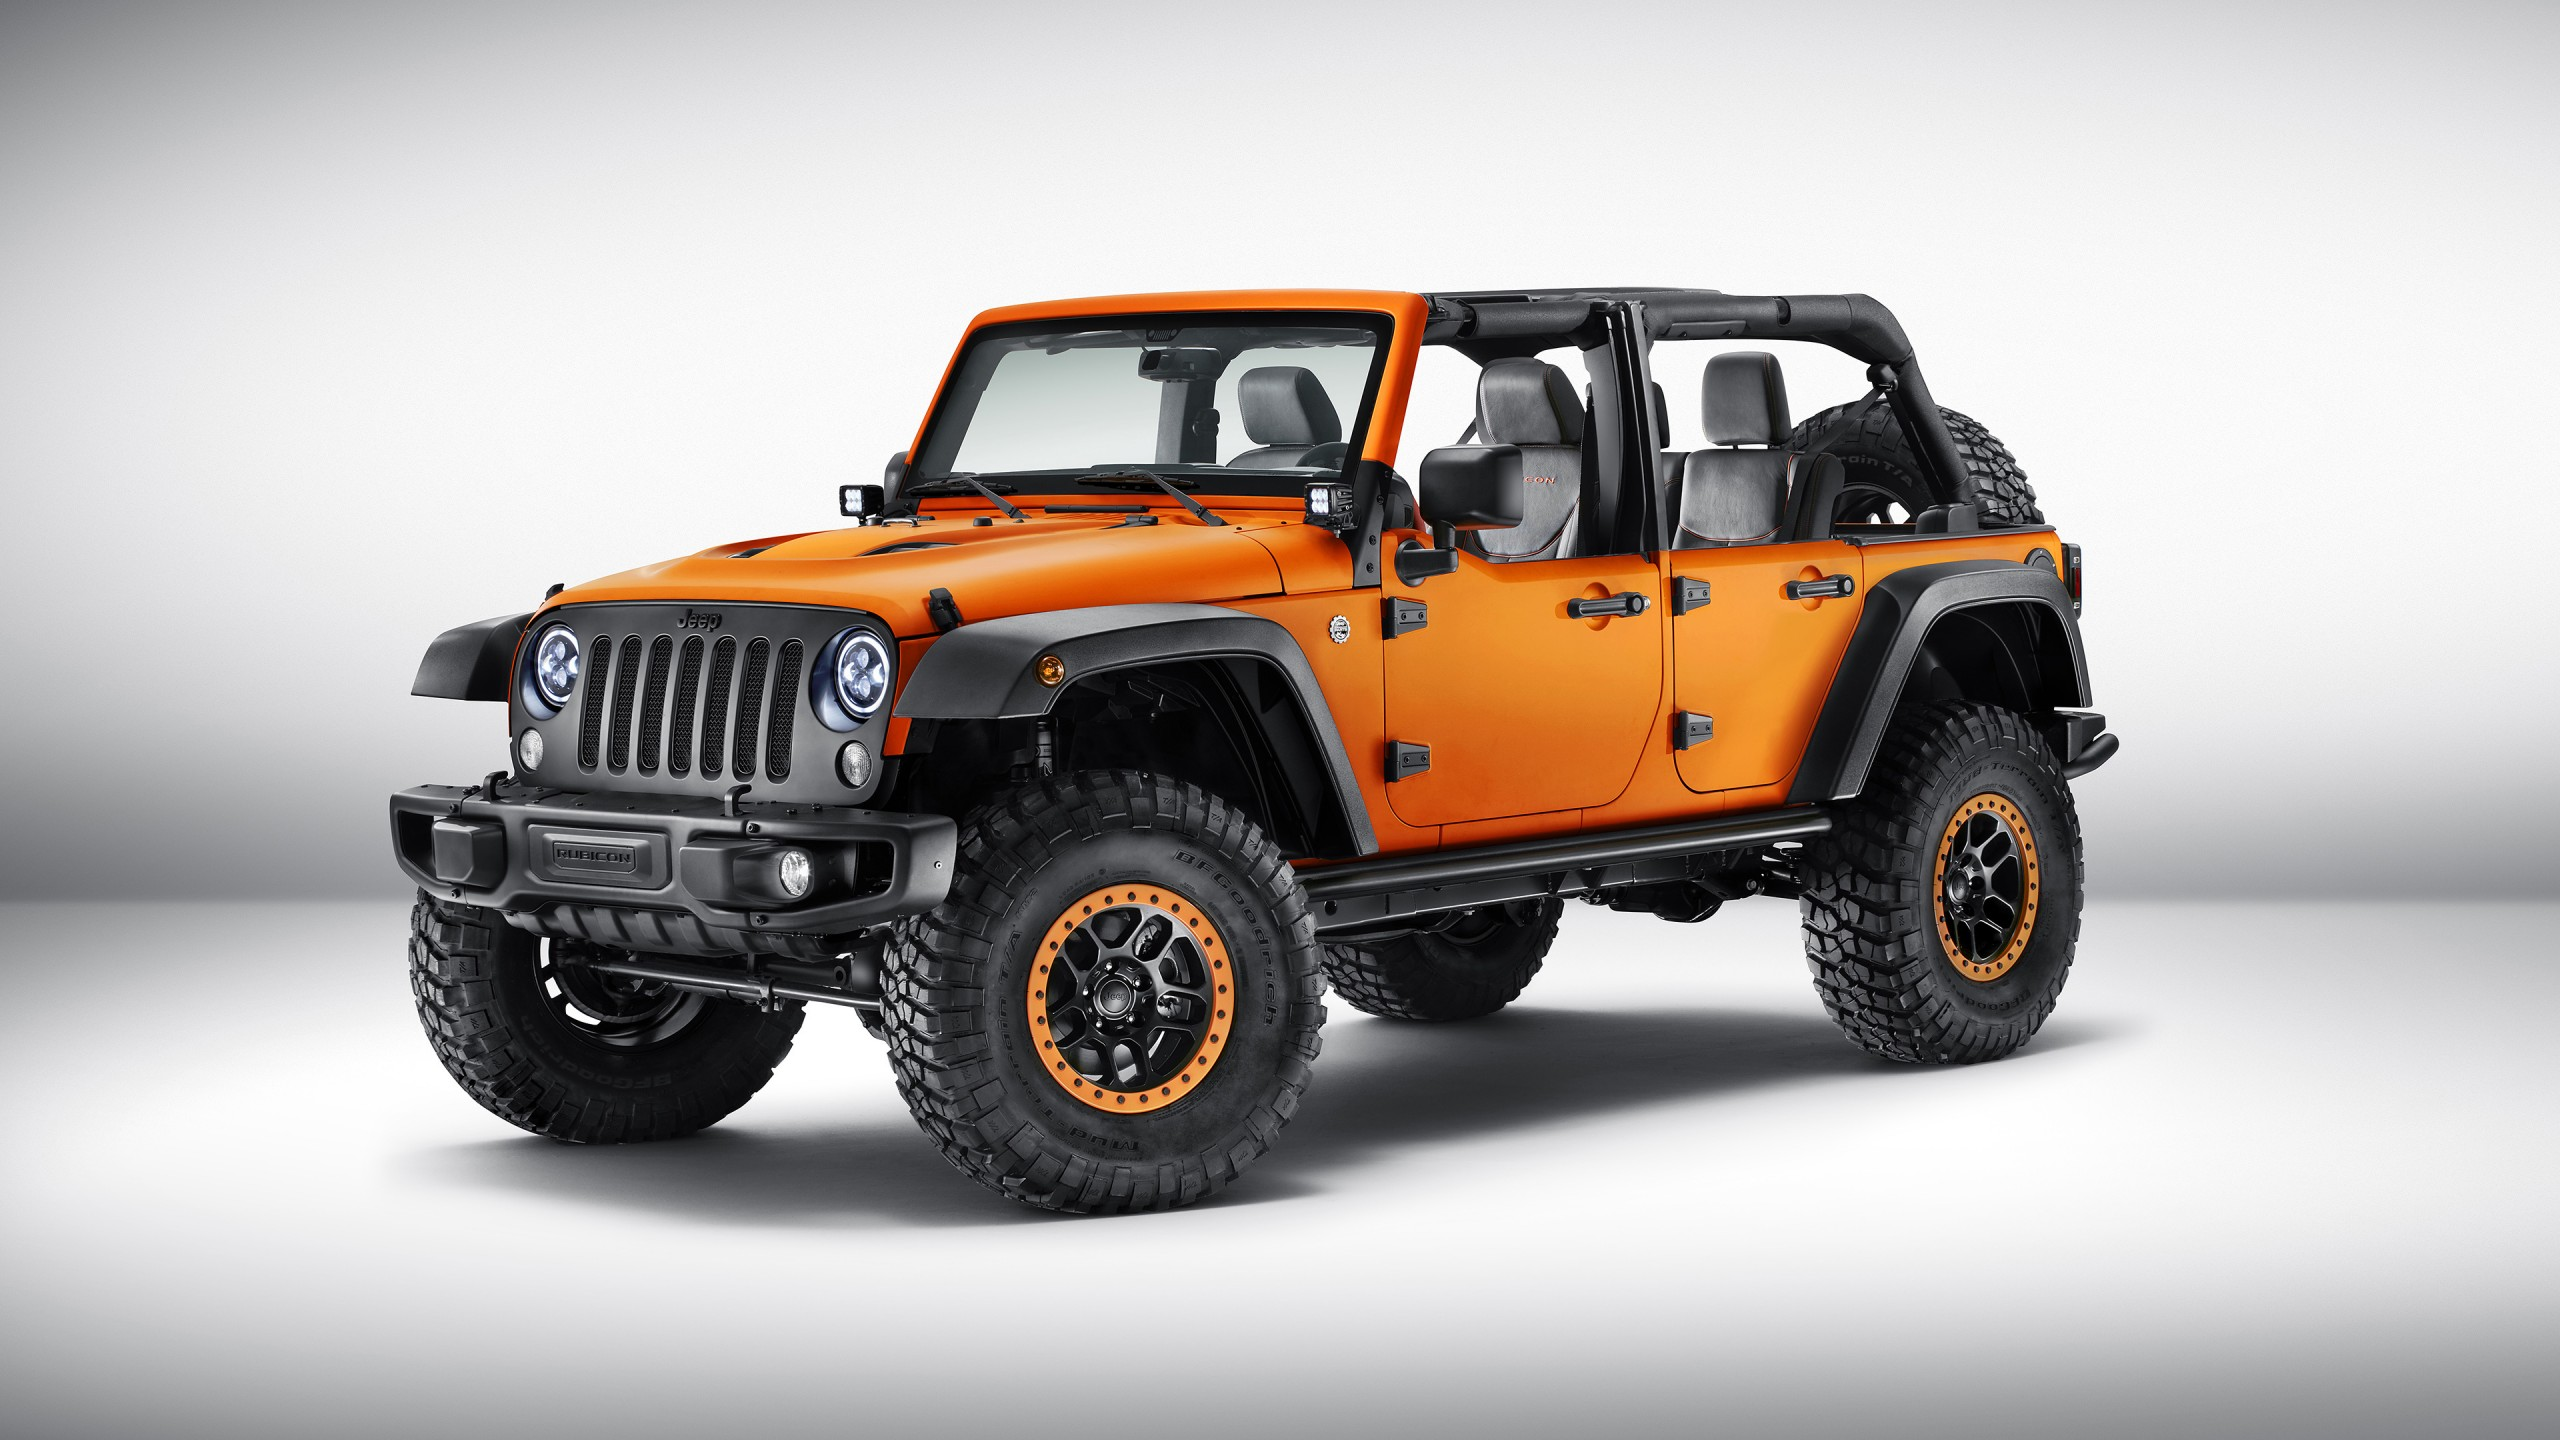 2015 jeep wrangler concept wallpaper hd car wallpapers. Black Bedroom Furniture Sets. Home Design Ideas